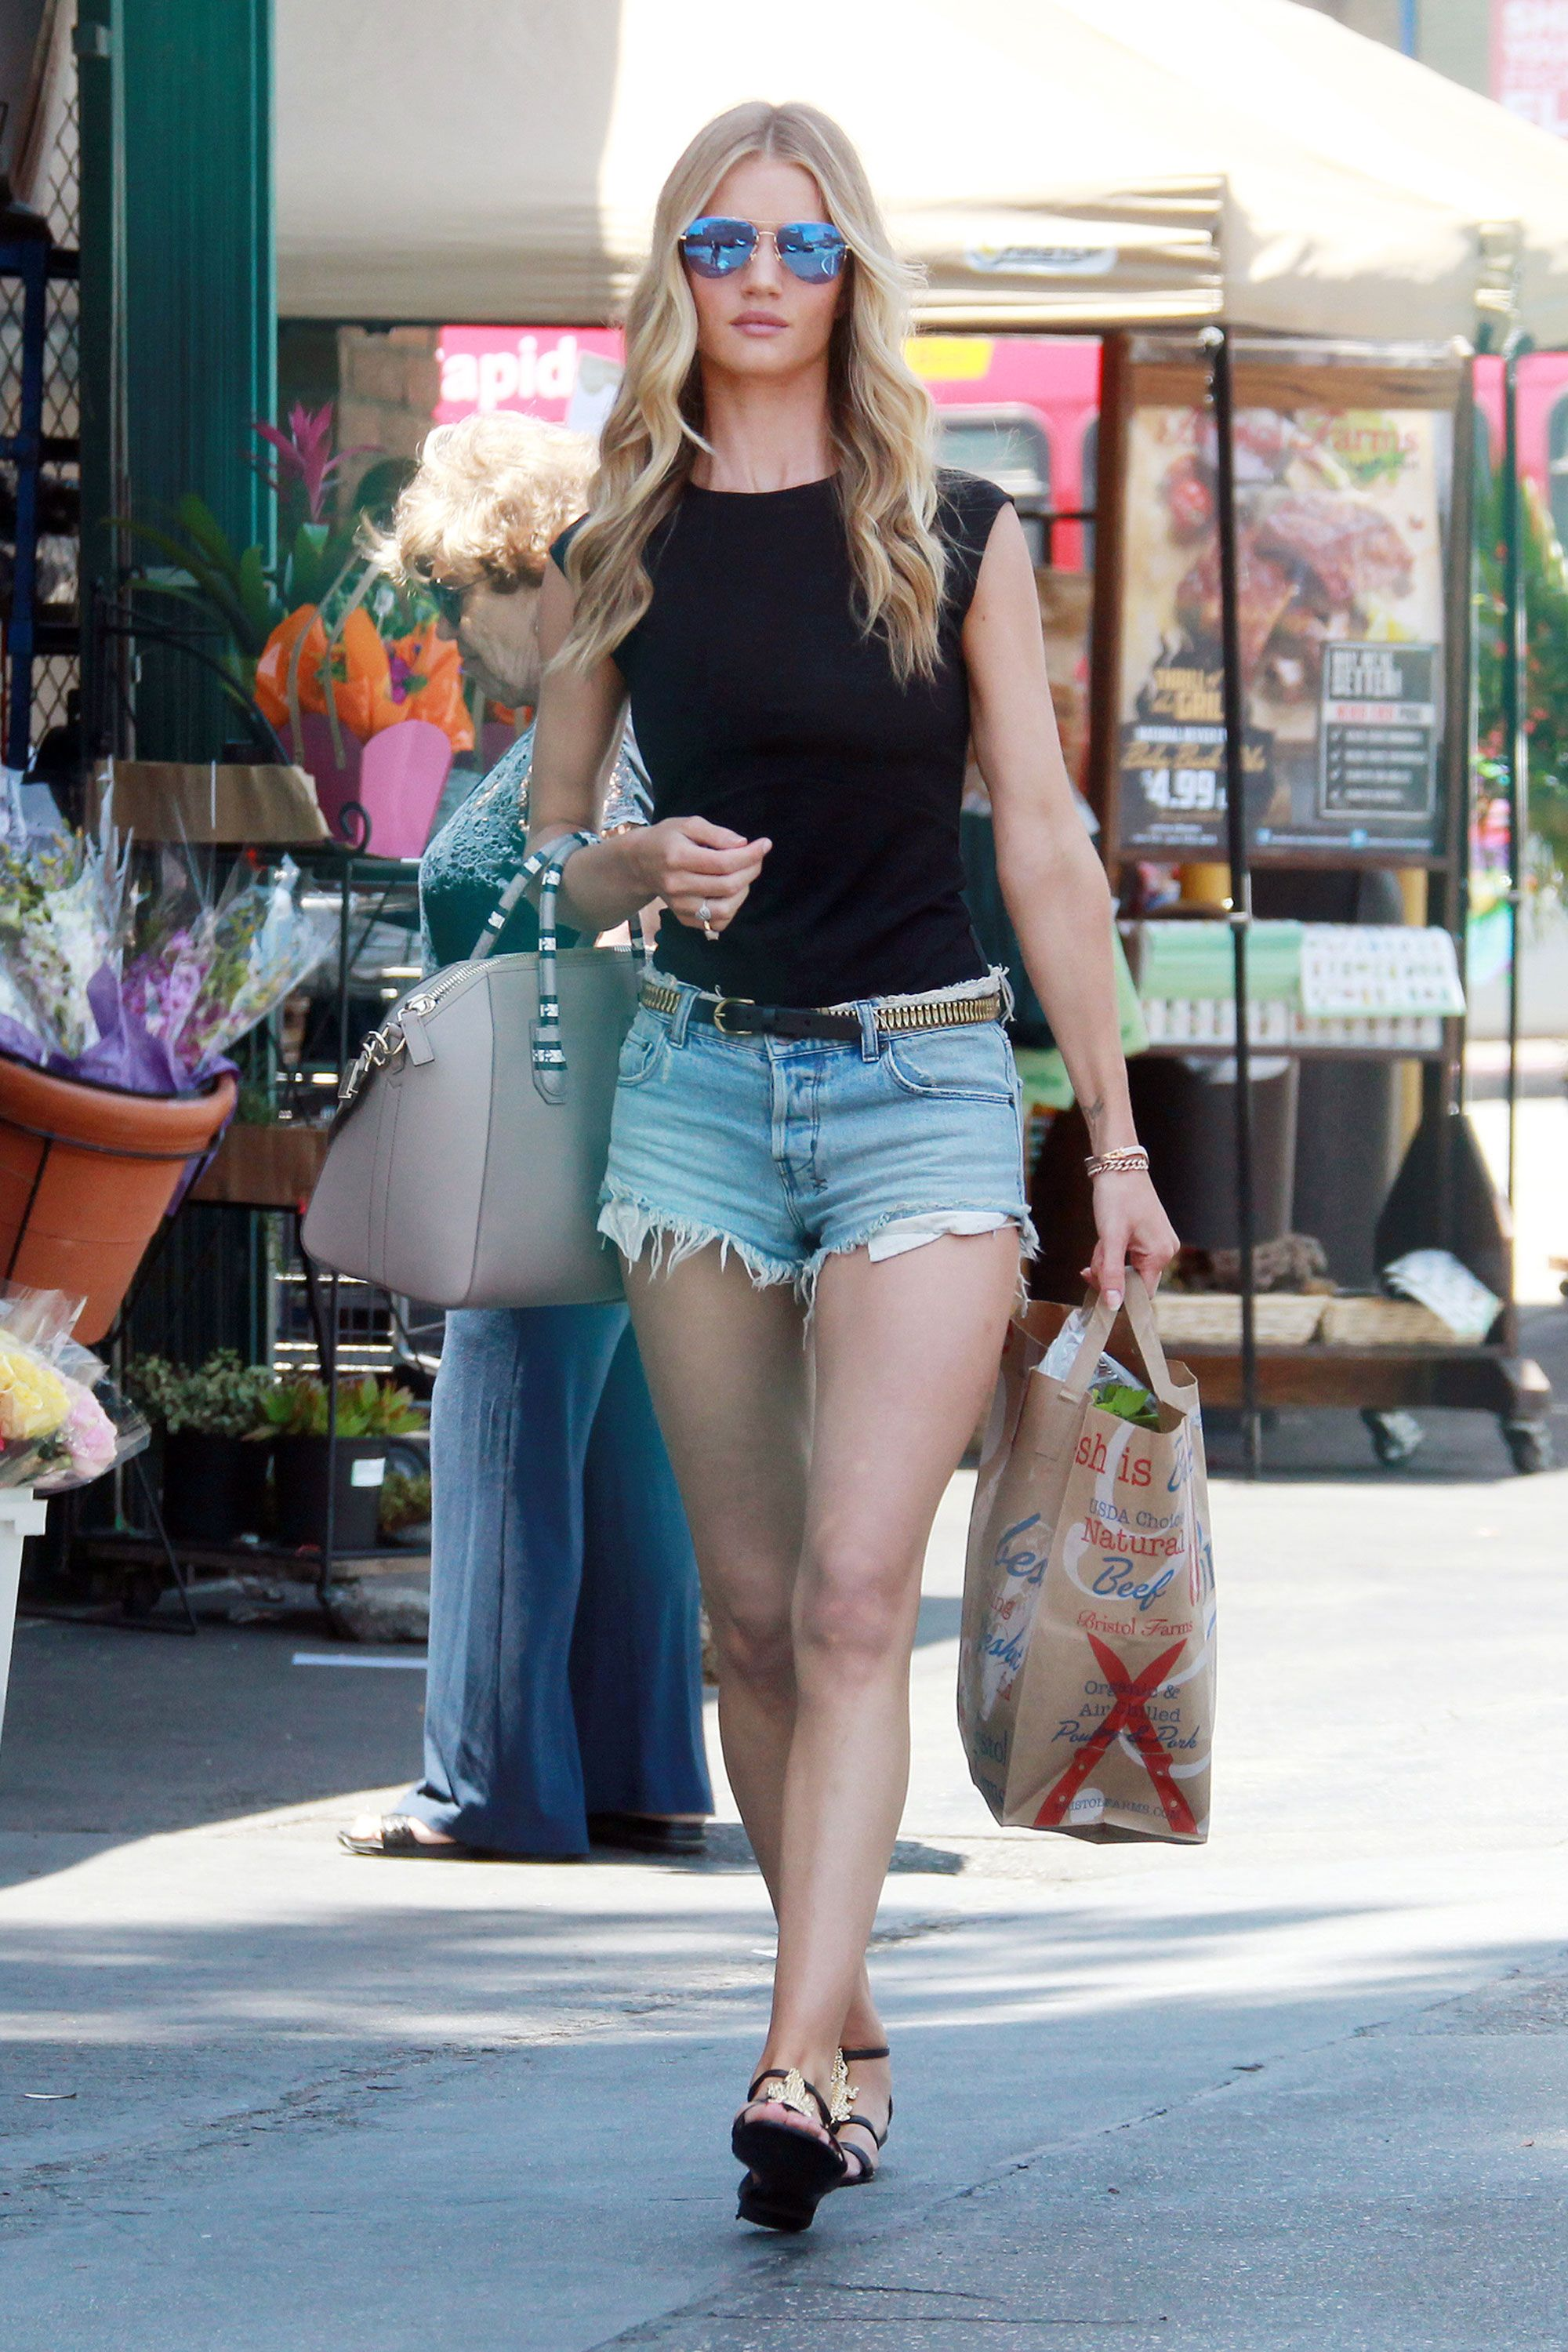 48da40f5fe1 Rosie Huntington-Whiteley keeps it simple while running errands in cutoff  shorts and a tank.